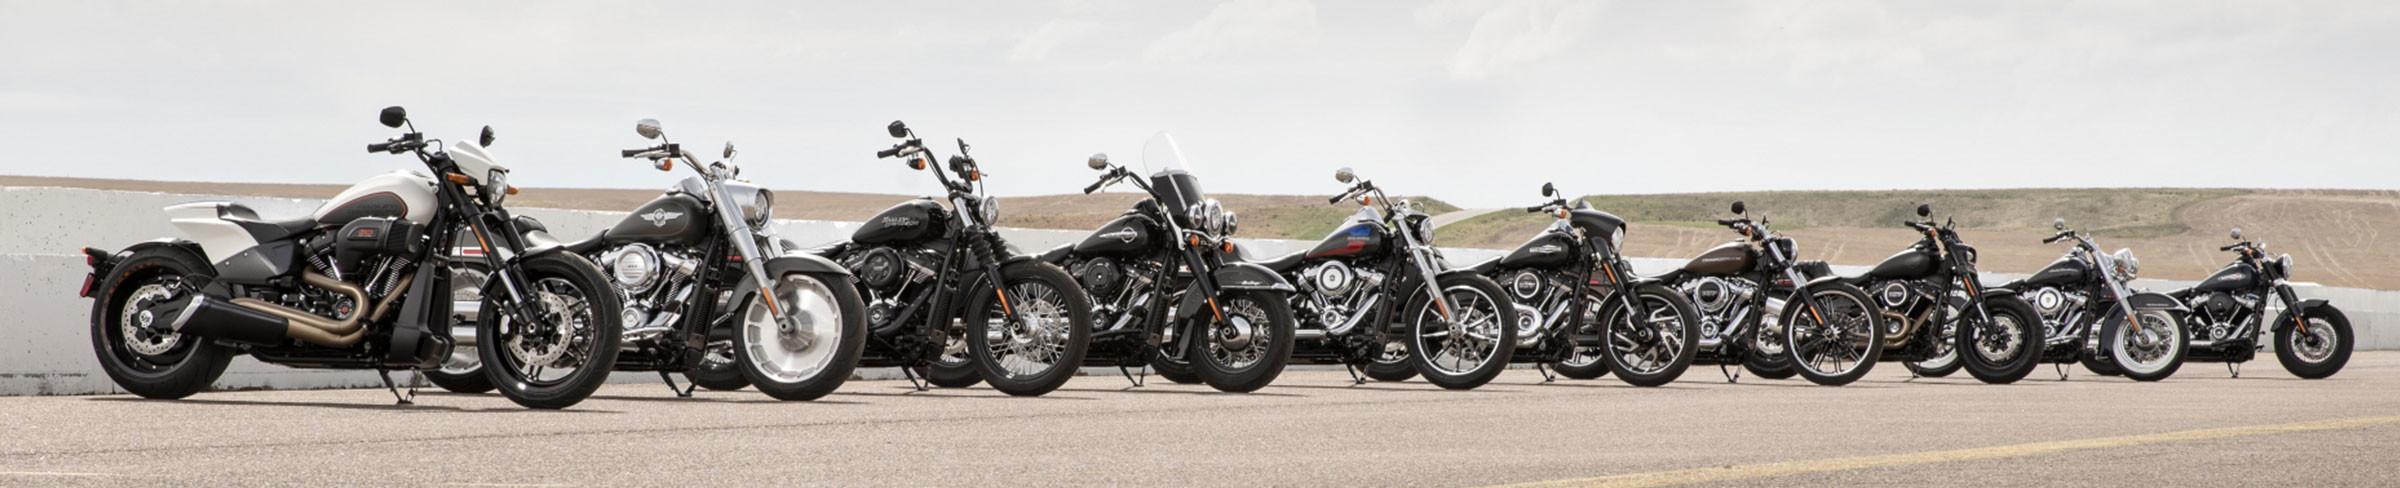 Harley-Davidson<sup>®</sup> Motorcycles for sale in Ohio